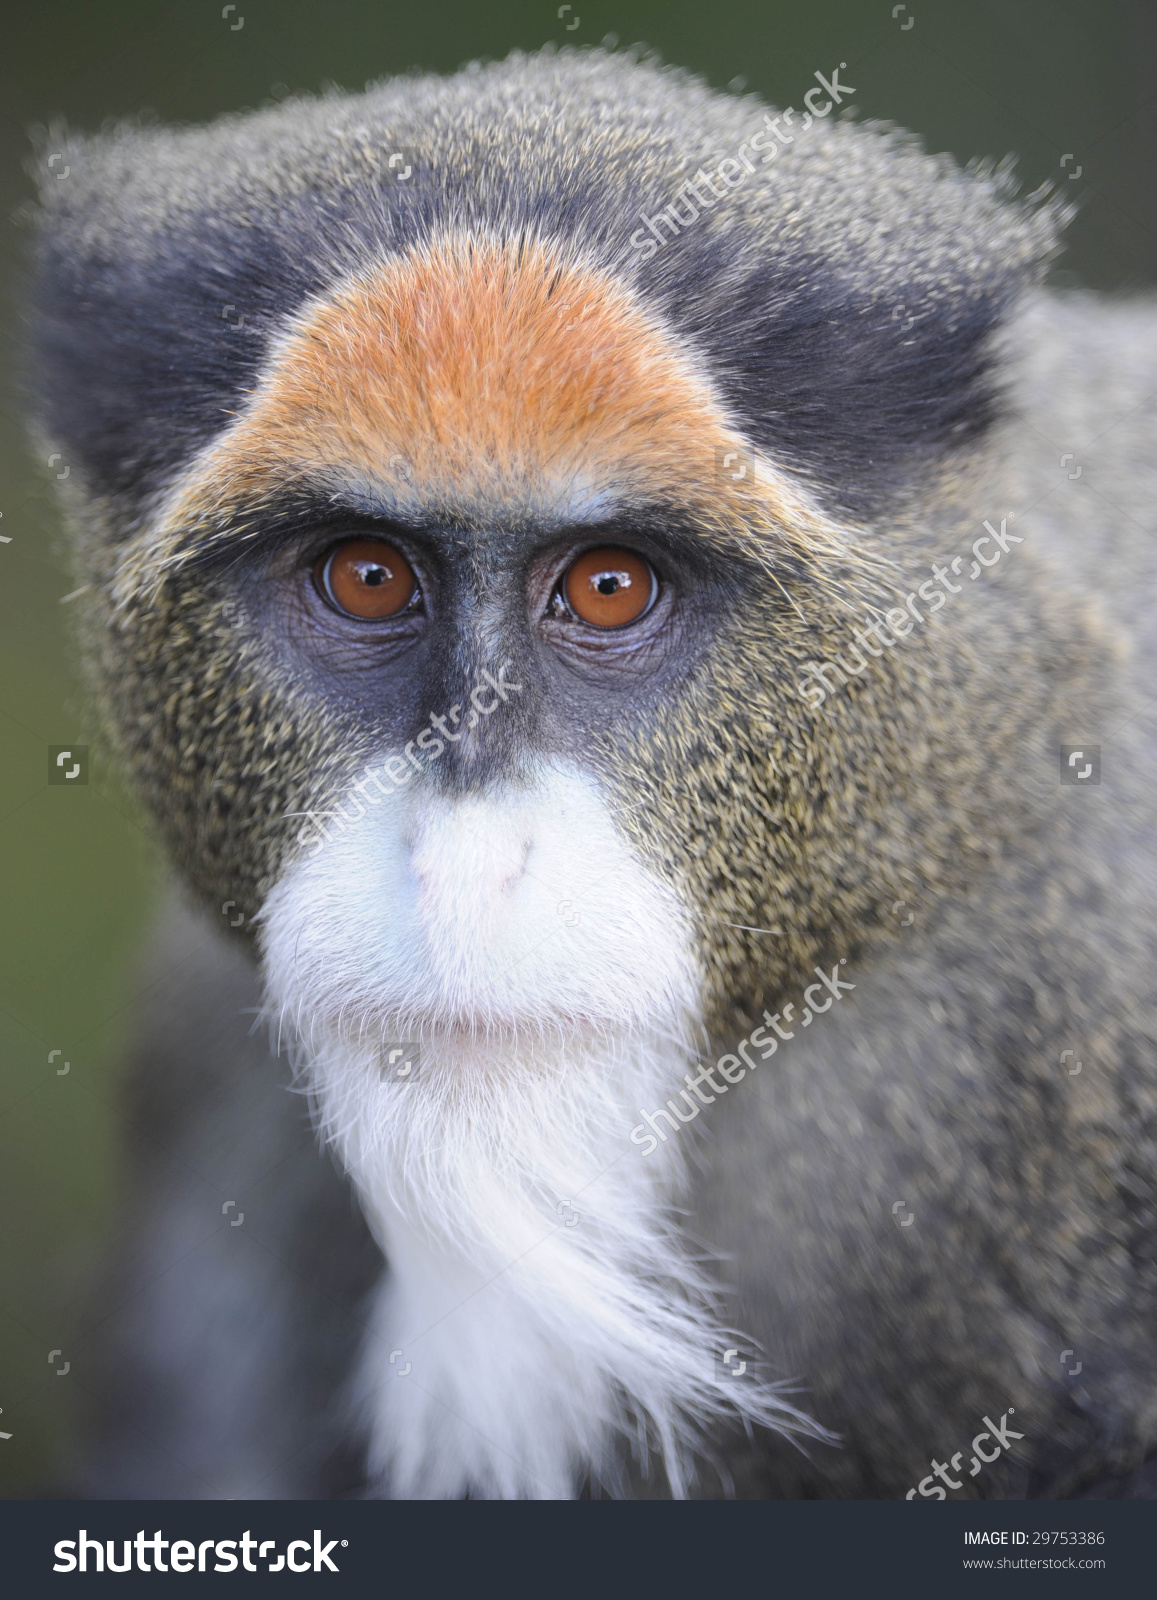 White-faced Guenon clipart #6, Download drawings